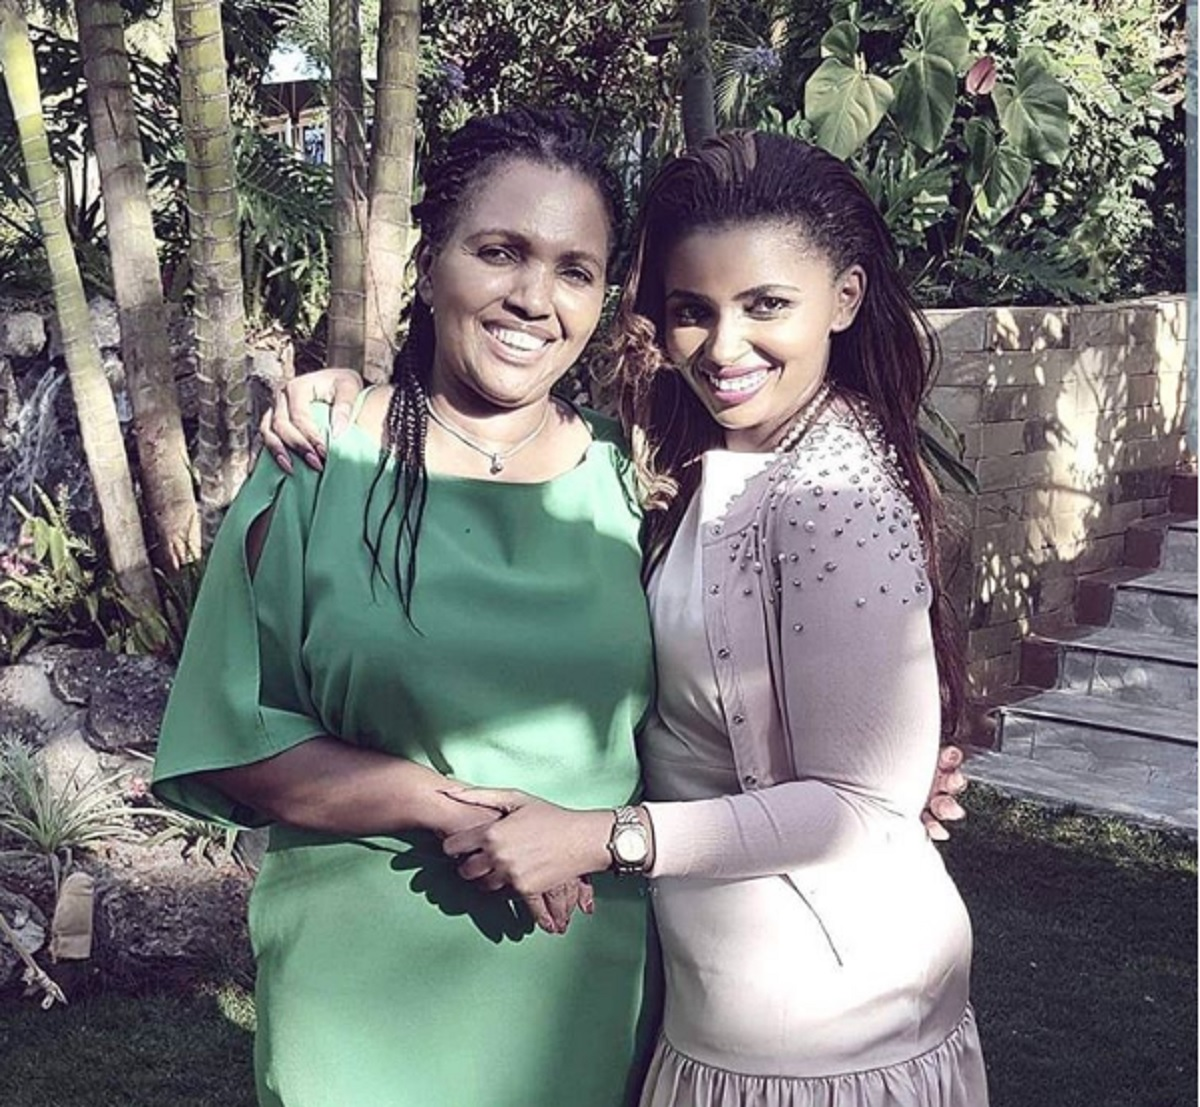 Keroche Breweries CEO Tabitha Karanja (left) and her daughter, Anerlisa Muigai. Anerlisa has taken to Instagram to defend her parents following tax evasion allegations. www.businesstoday.co.ke